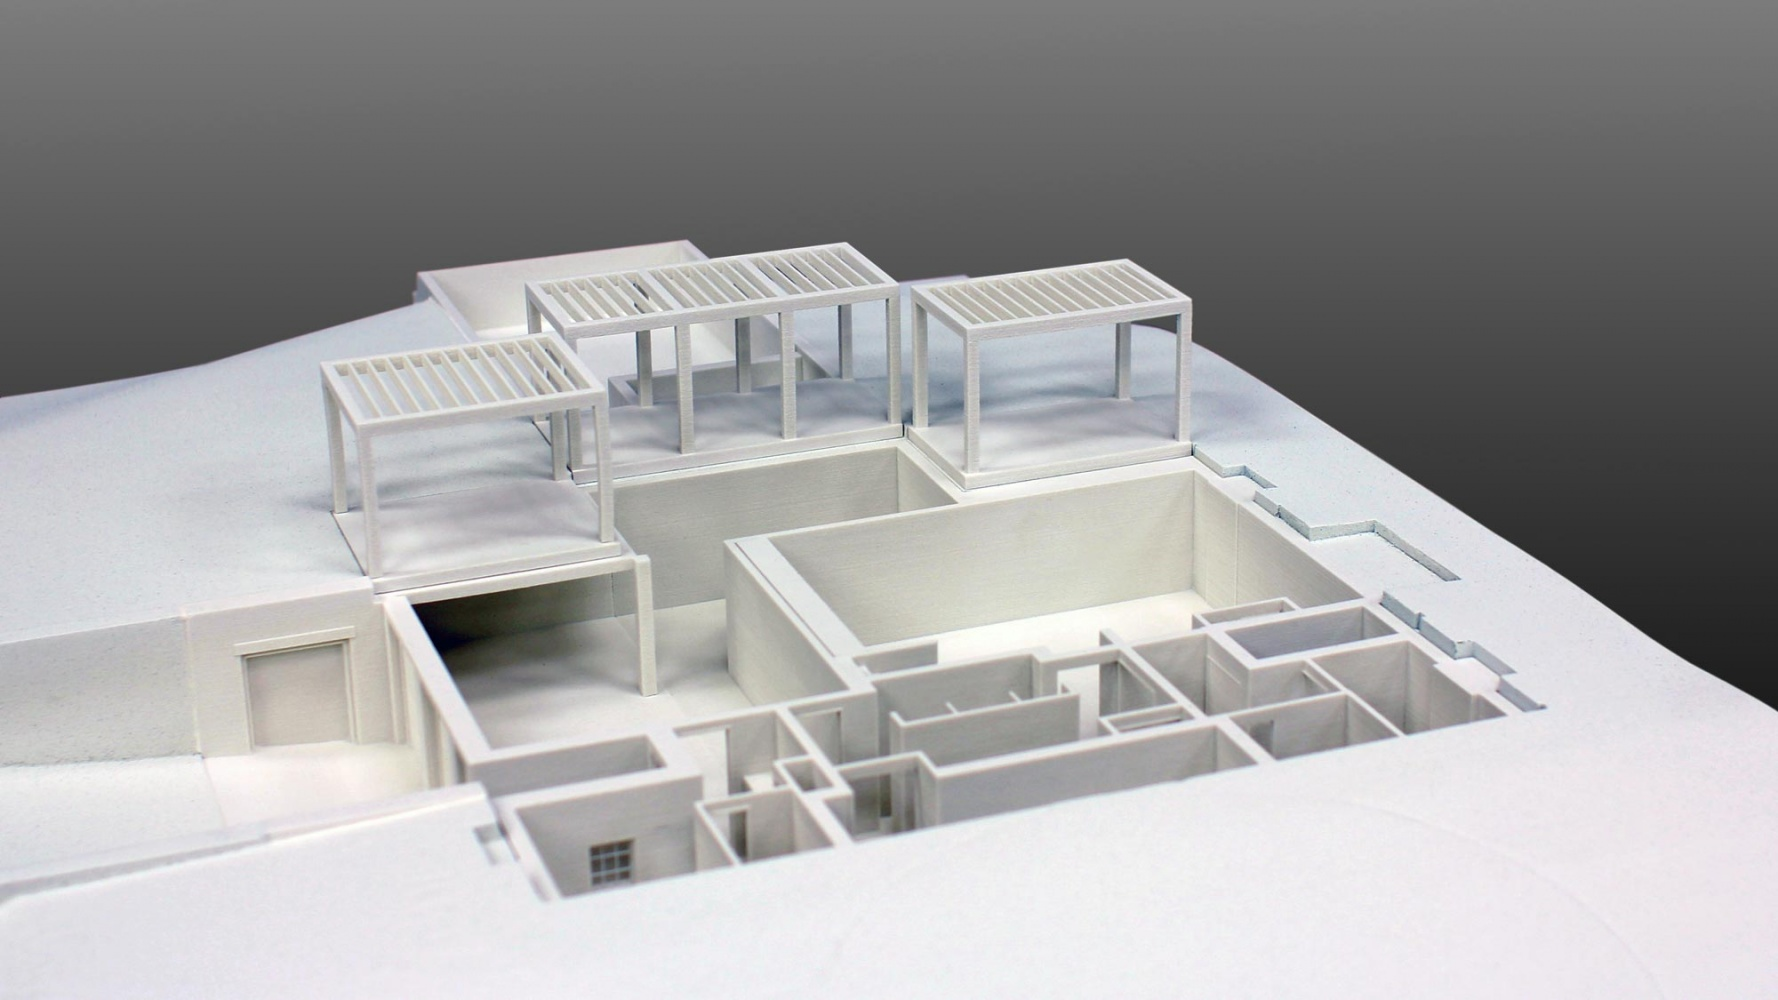 Quarter scale take-apart residential model, 3D printed from ArchiCAD geometry. The window details were laser cut and integrated with the building 3D prints. The site was CNC machined to accept the 3D prints.